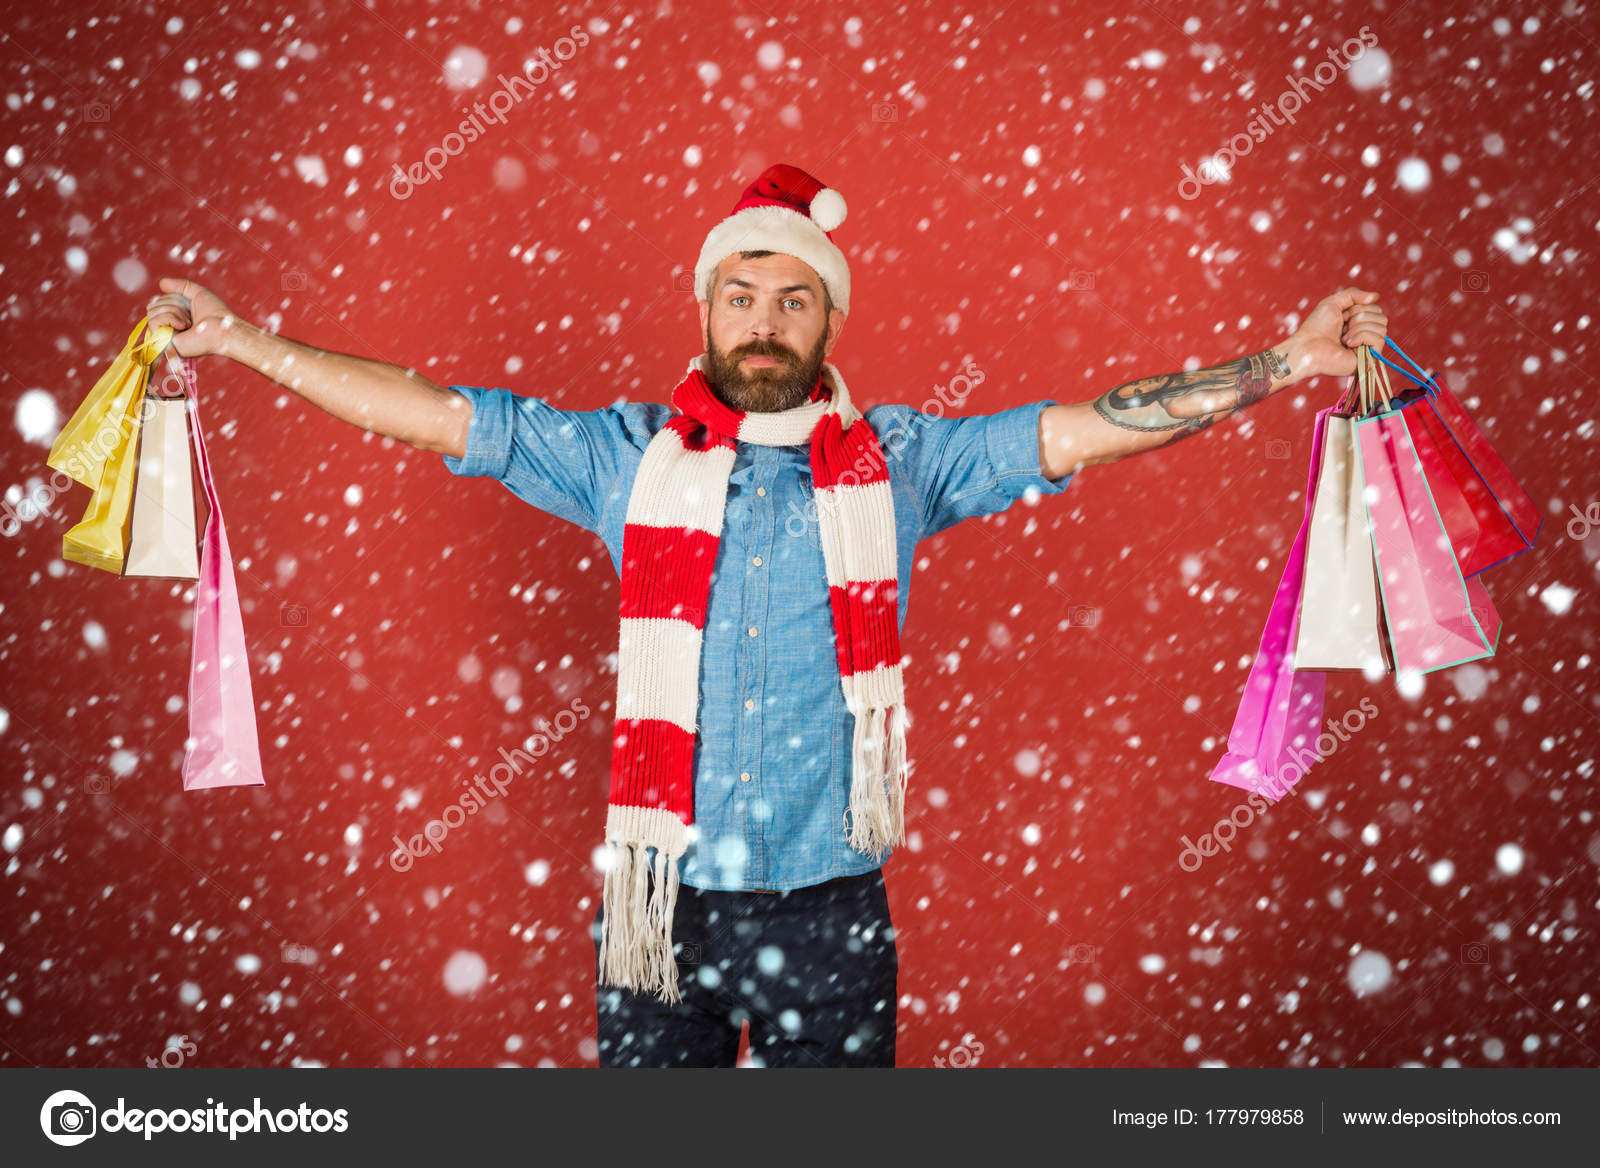 b3312a2768988 Christmas and new year snow concept Christmas hipster hold shopping bags on  red background. Man shopper wear santa hat and scarf. Black friday sale  concept.